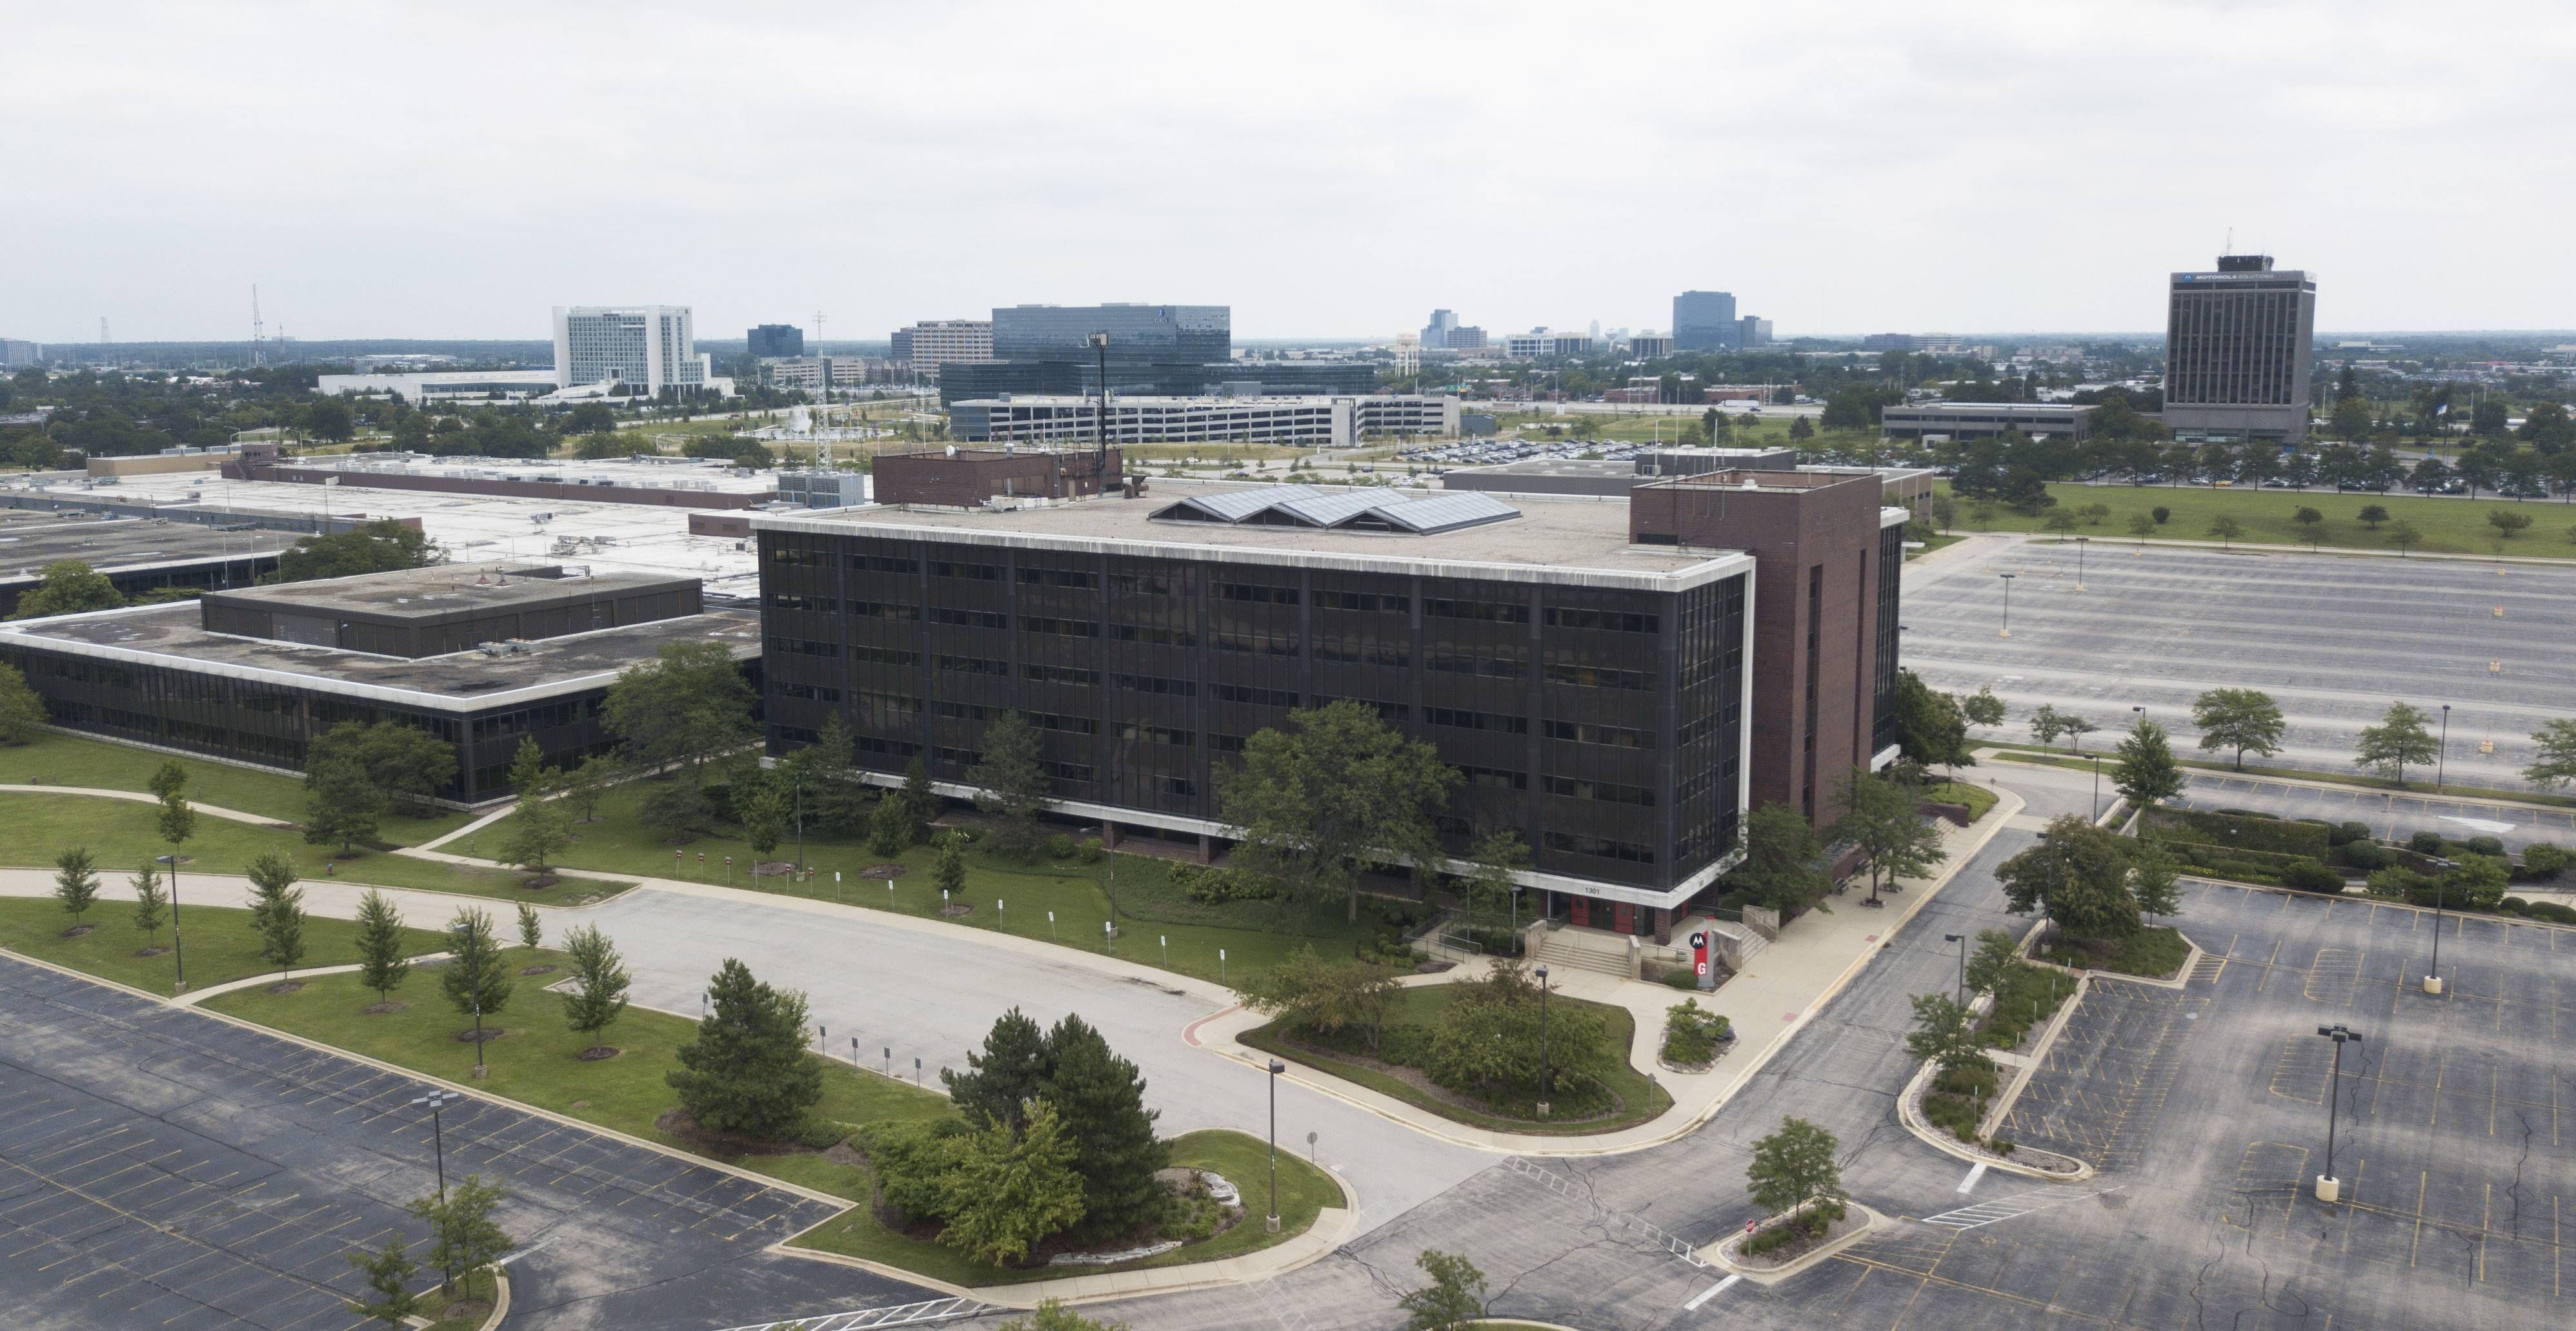 New Schaumburg development rivals Loop in land area